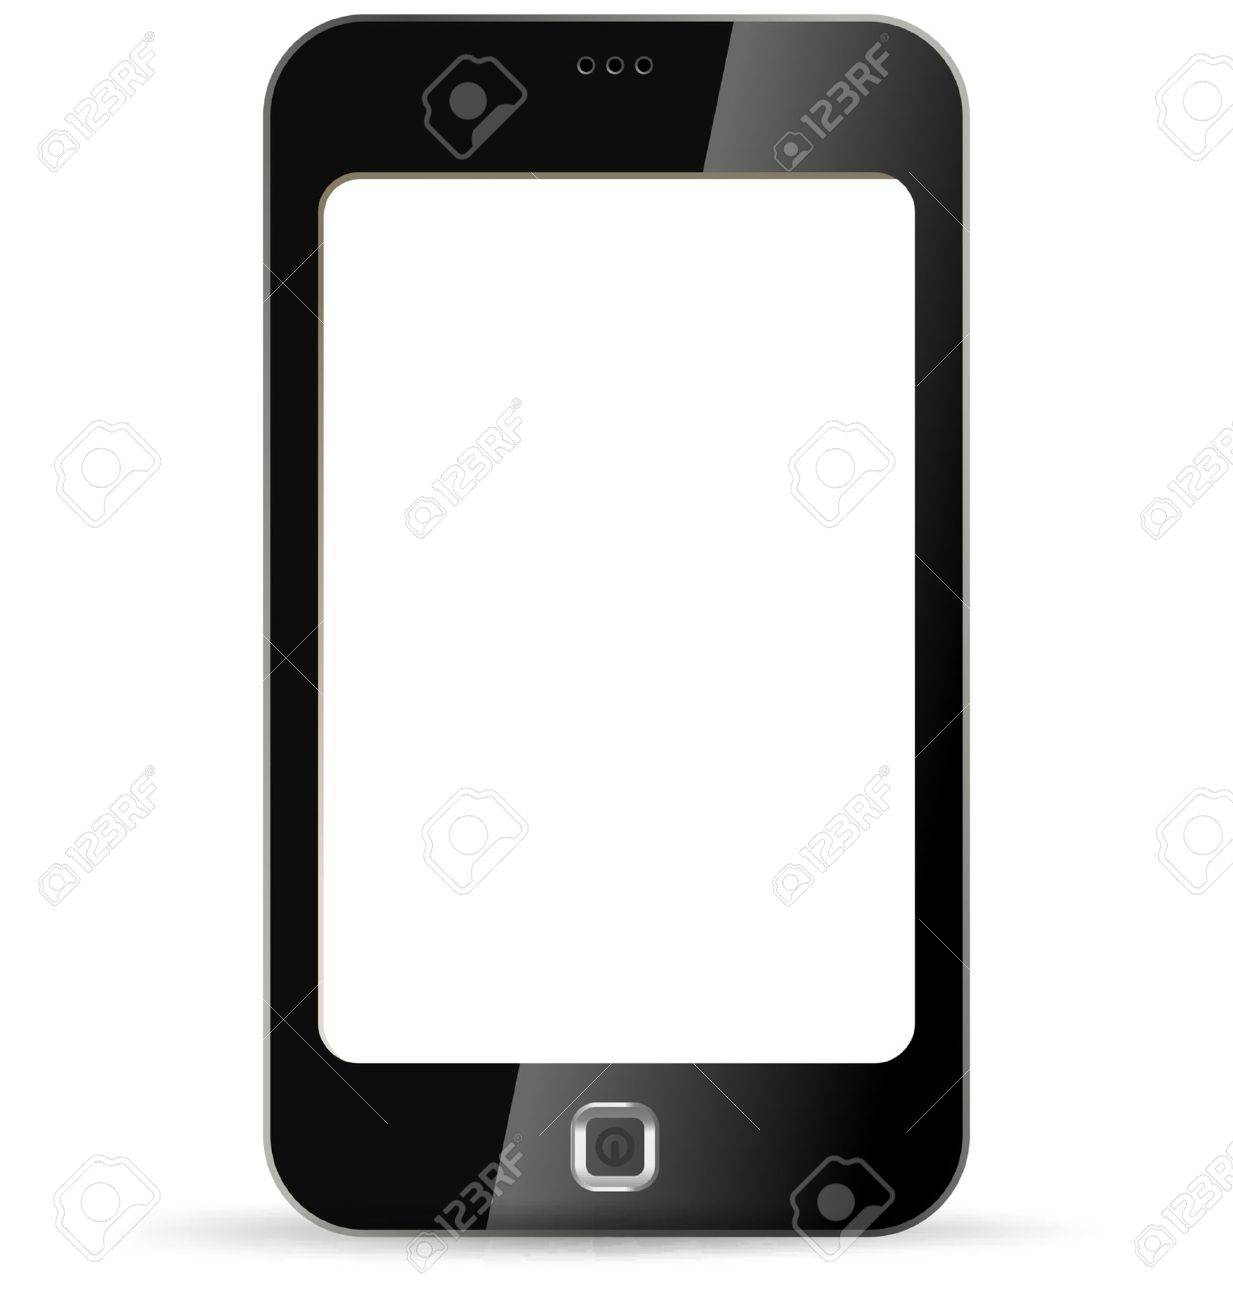 Smartphone on white background. Isolated PDA.  Application Copyspace. Vector. Editable. Stock Vector - 14095941